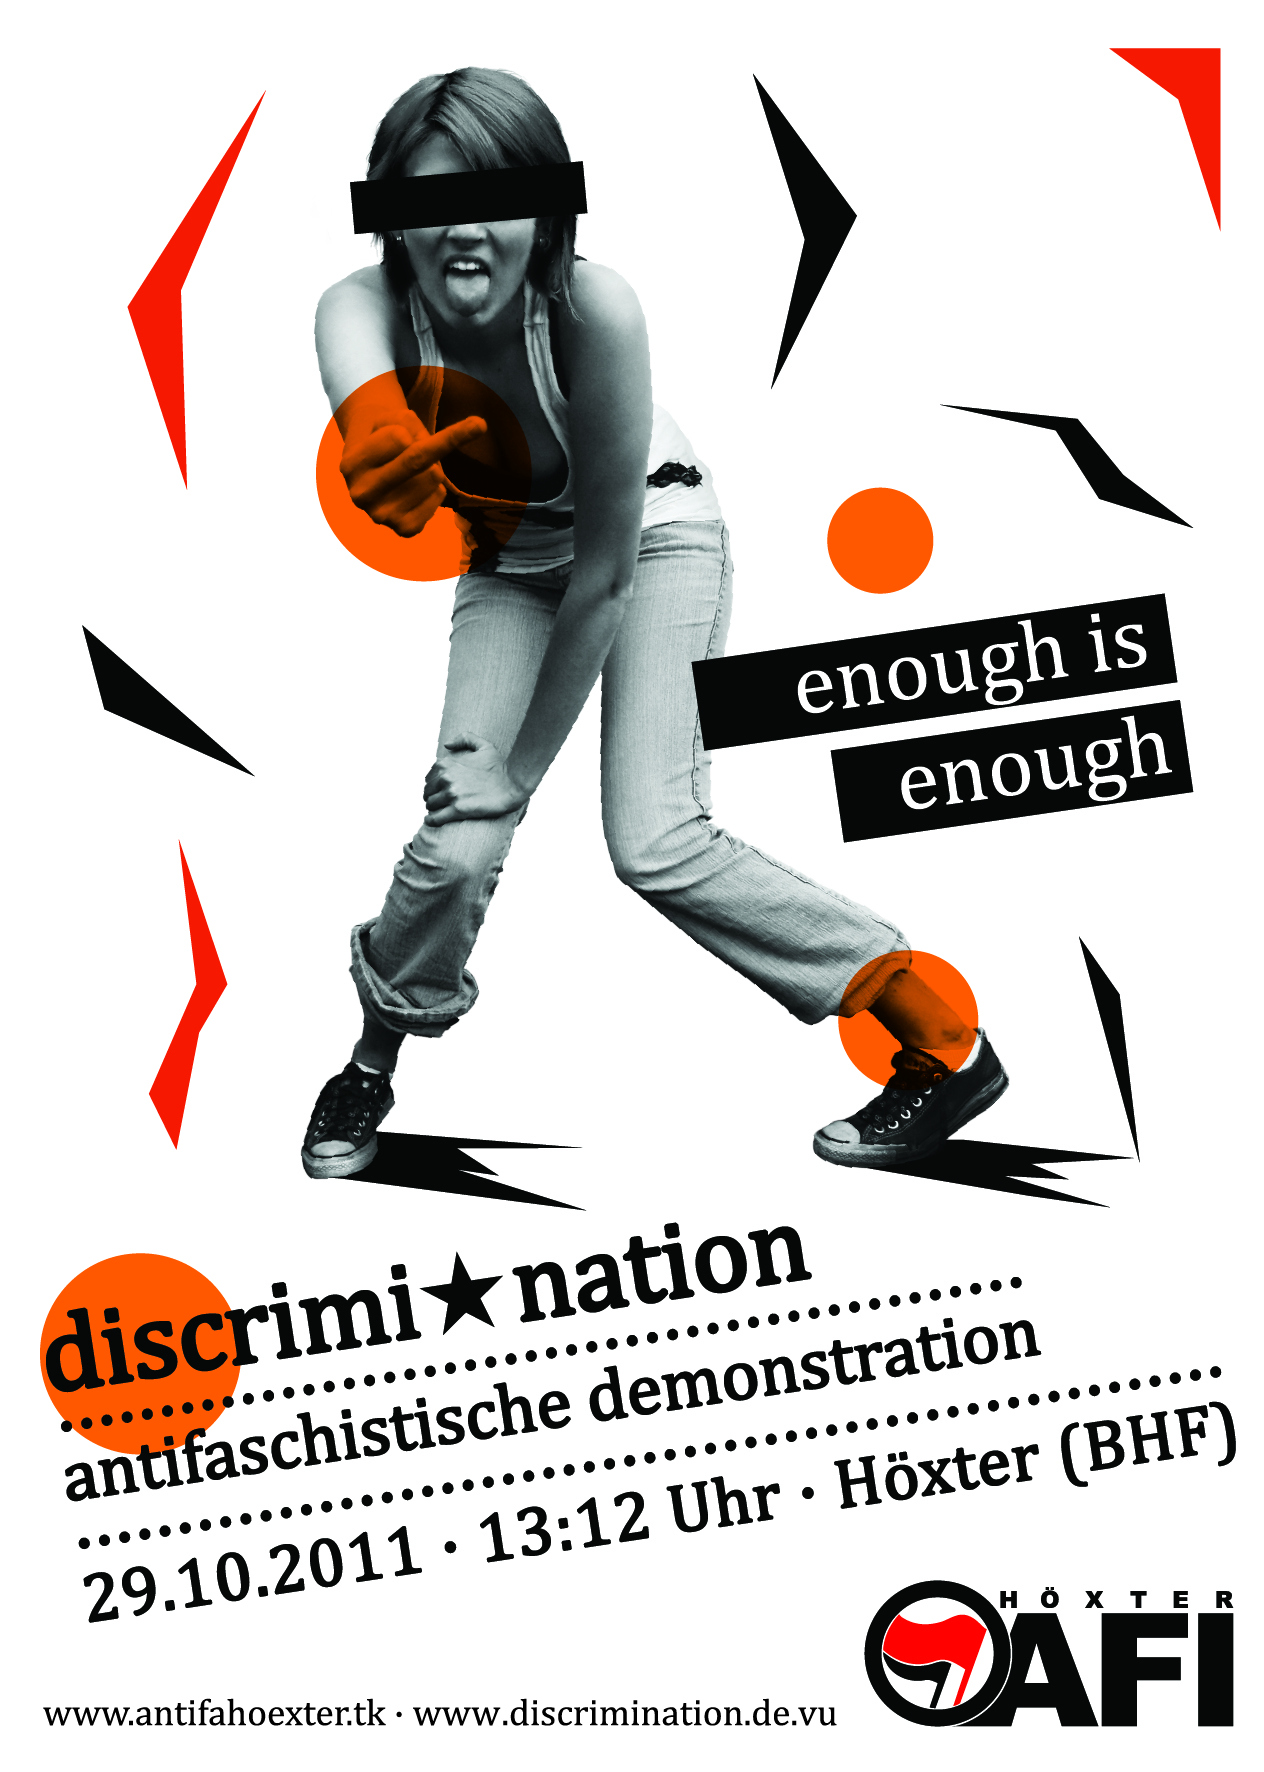 http://discrimination.blogsport.de/images/flyervorne.jpg